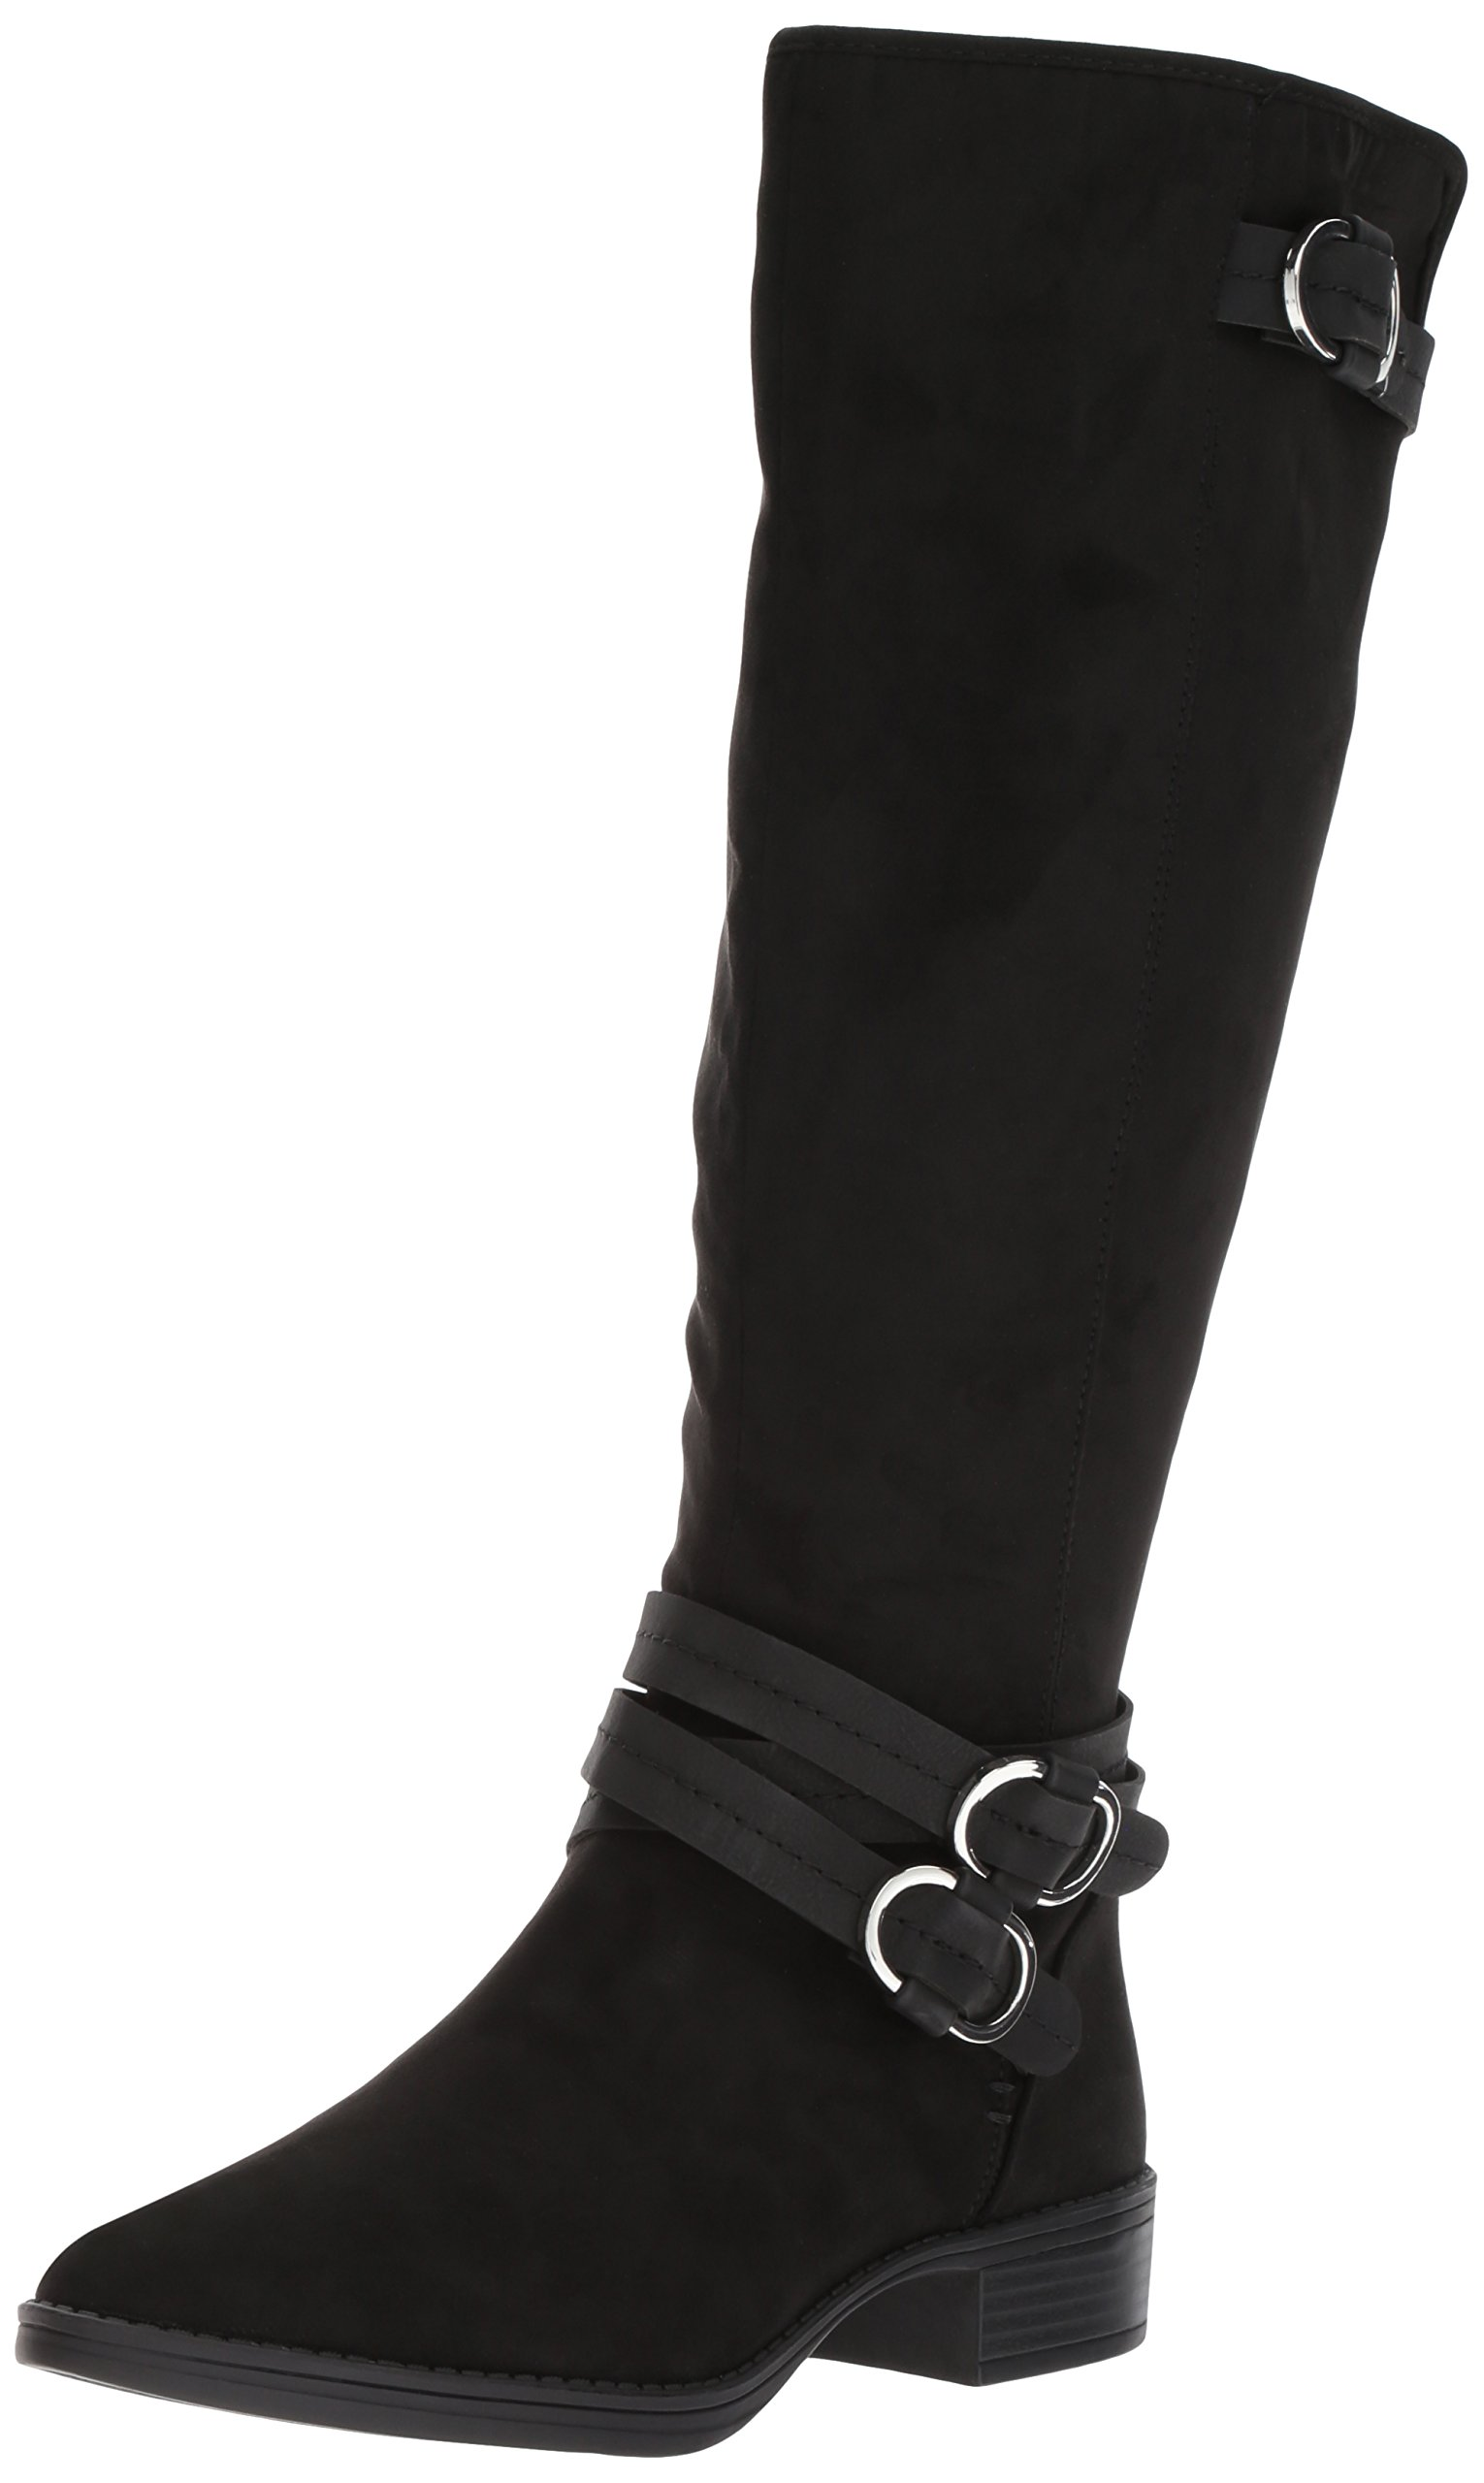 Circus by Sam Edelman Women's Prairie Equestrian Boot, Black, 7.5 Medium US by Circus by Sam Edelman